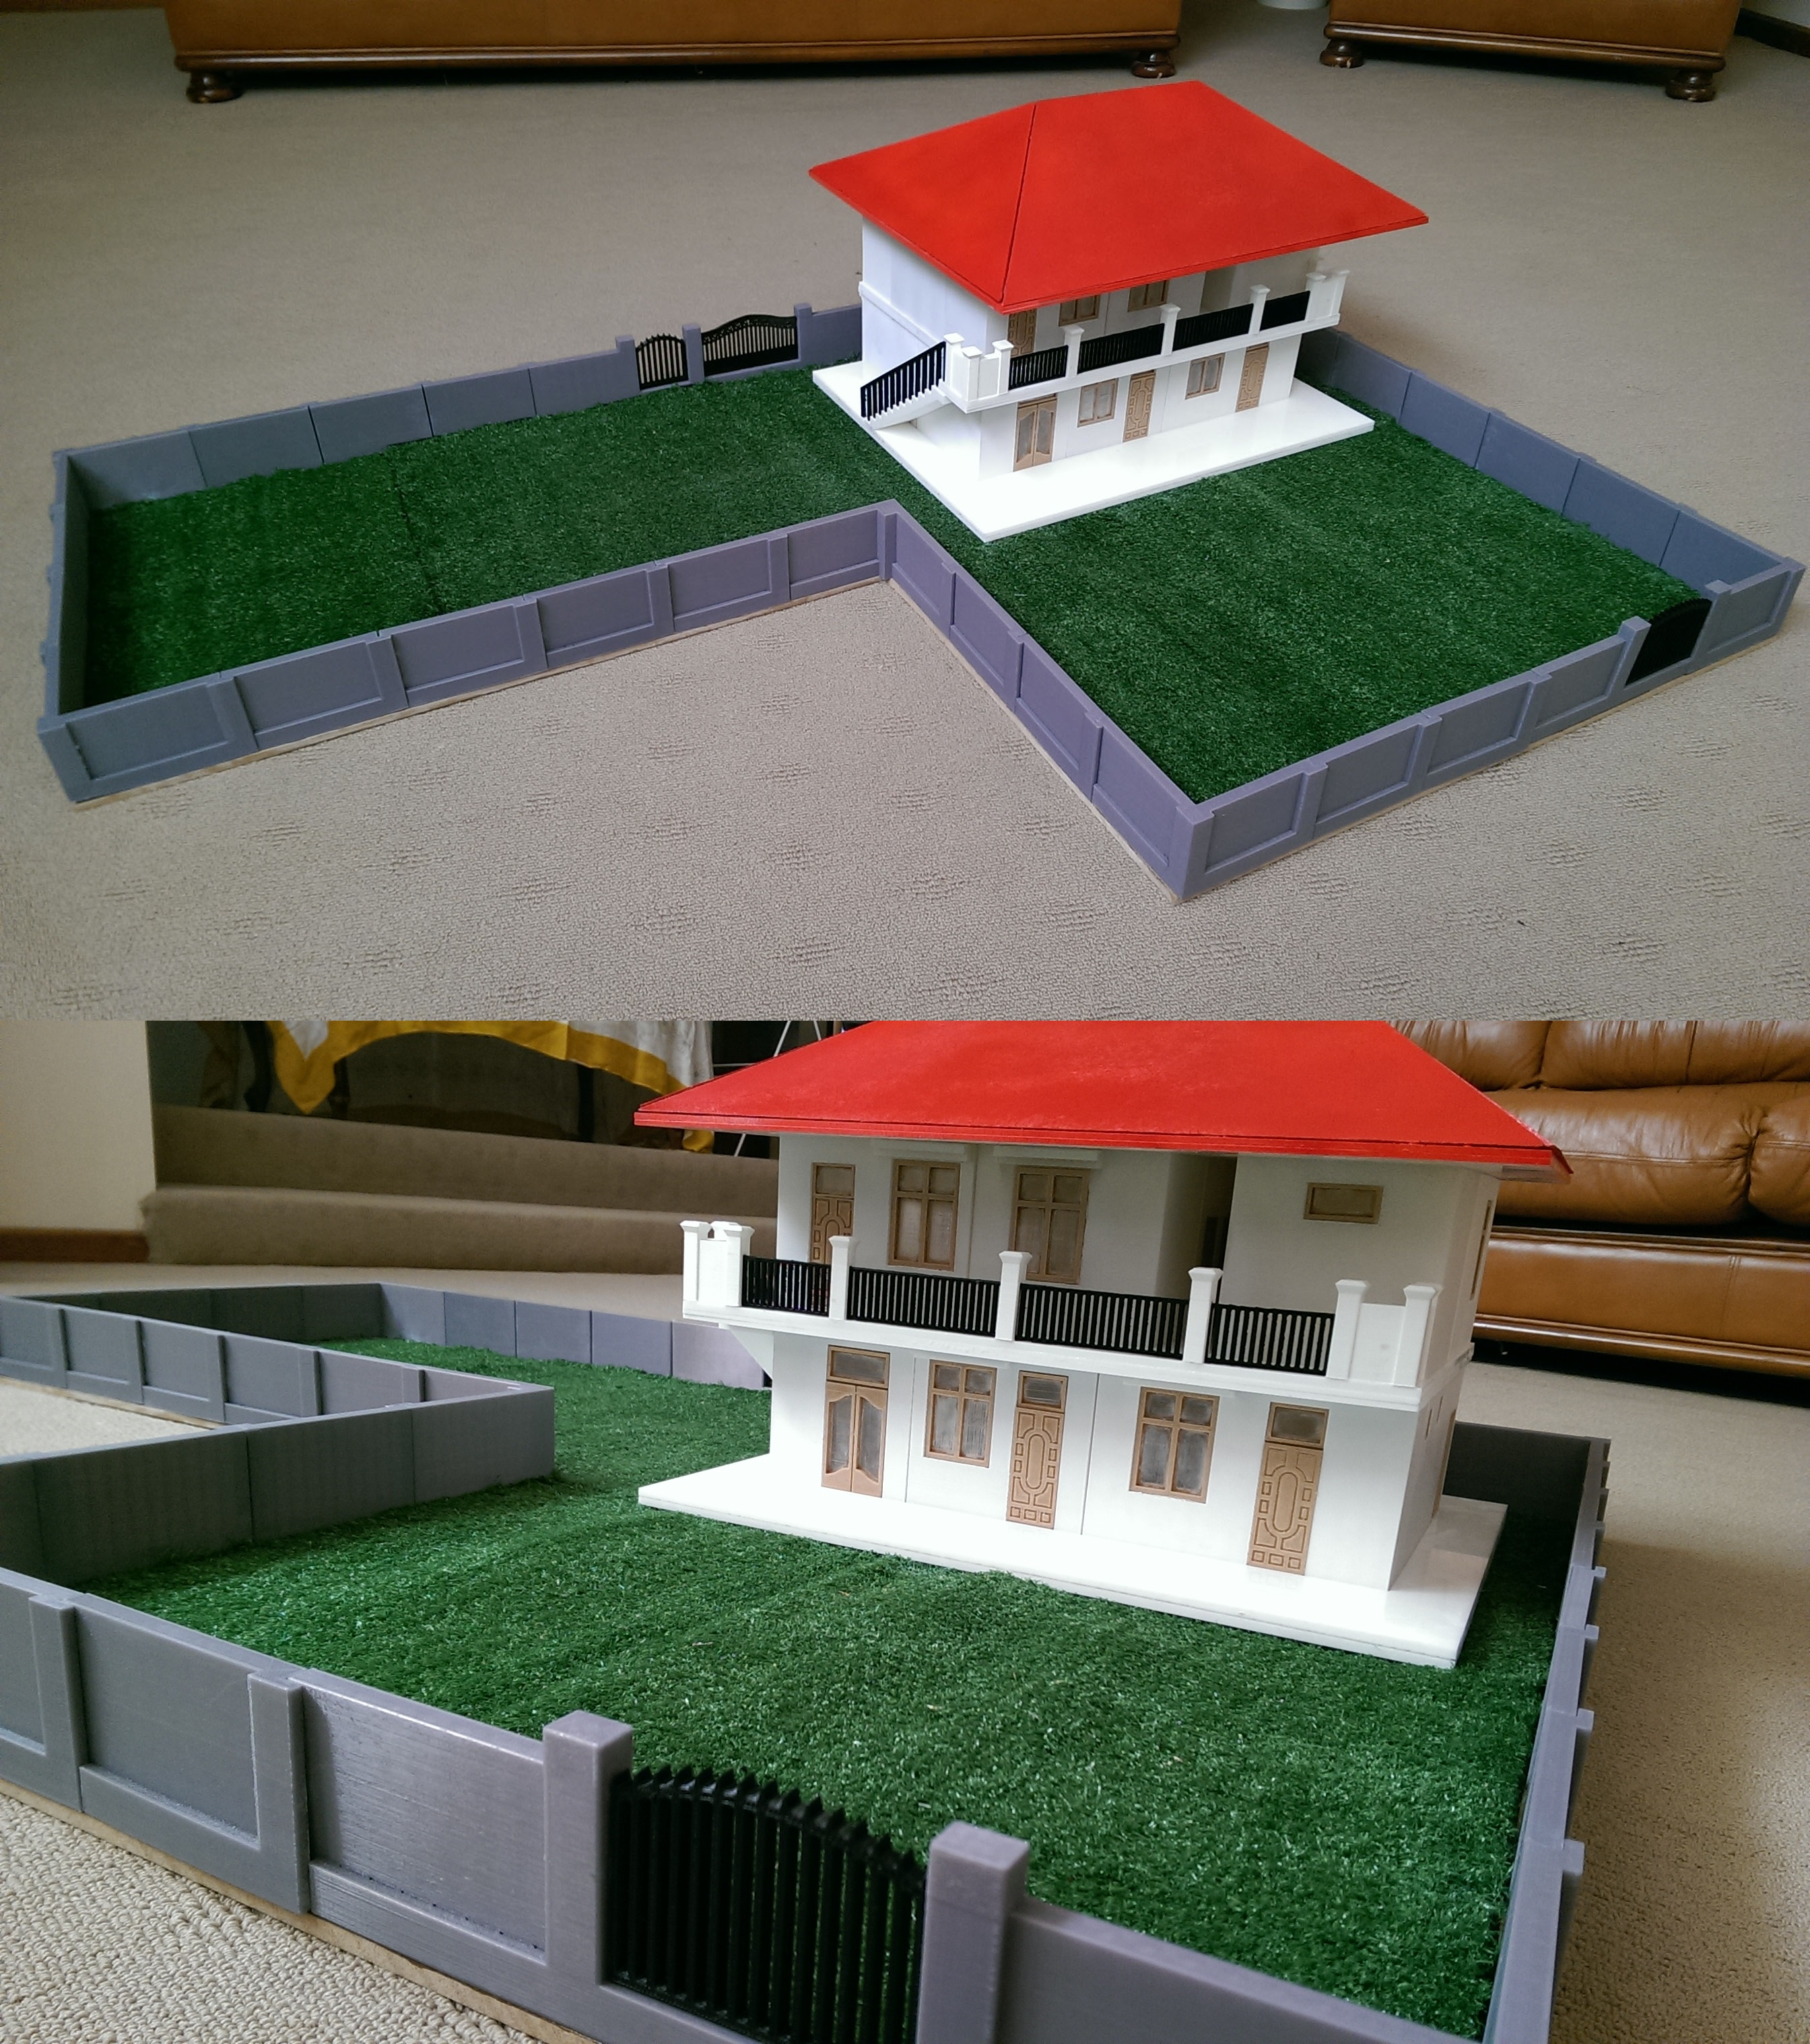 Mandalay Childrens Learning Centre, a massive 3D printed and Laser cut model